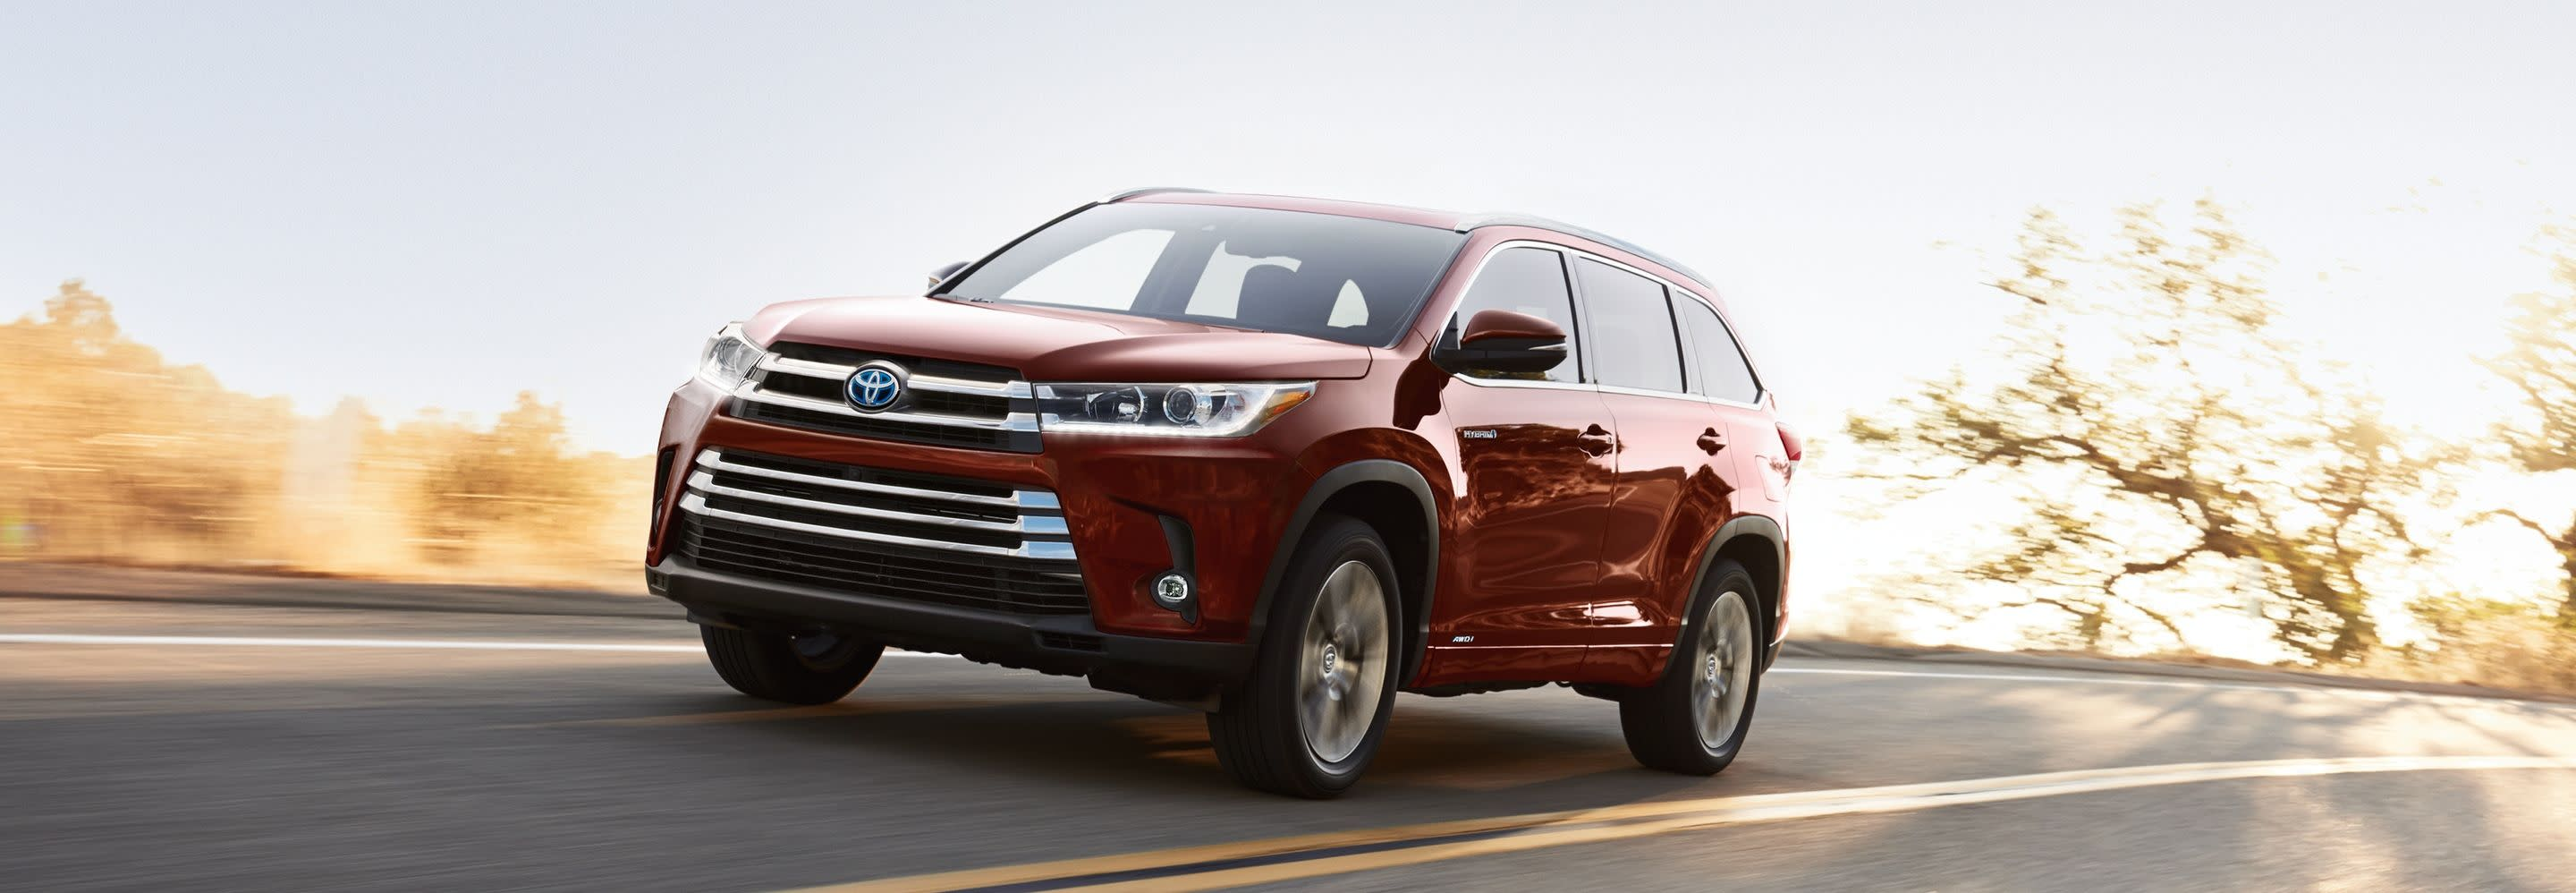 2019 Toyota Highlander Safety Features near Cleveland, OH